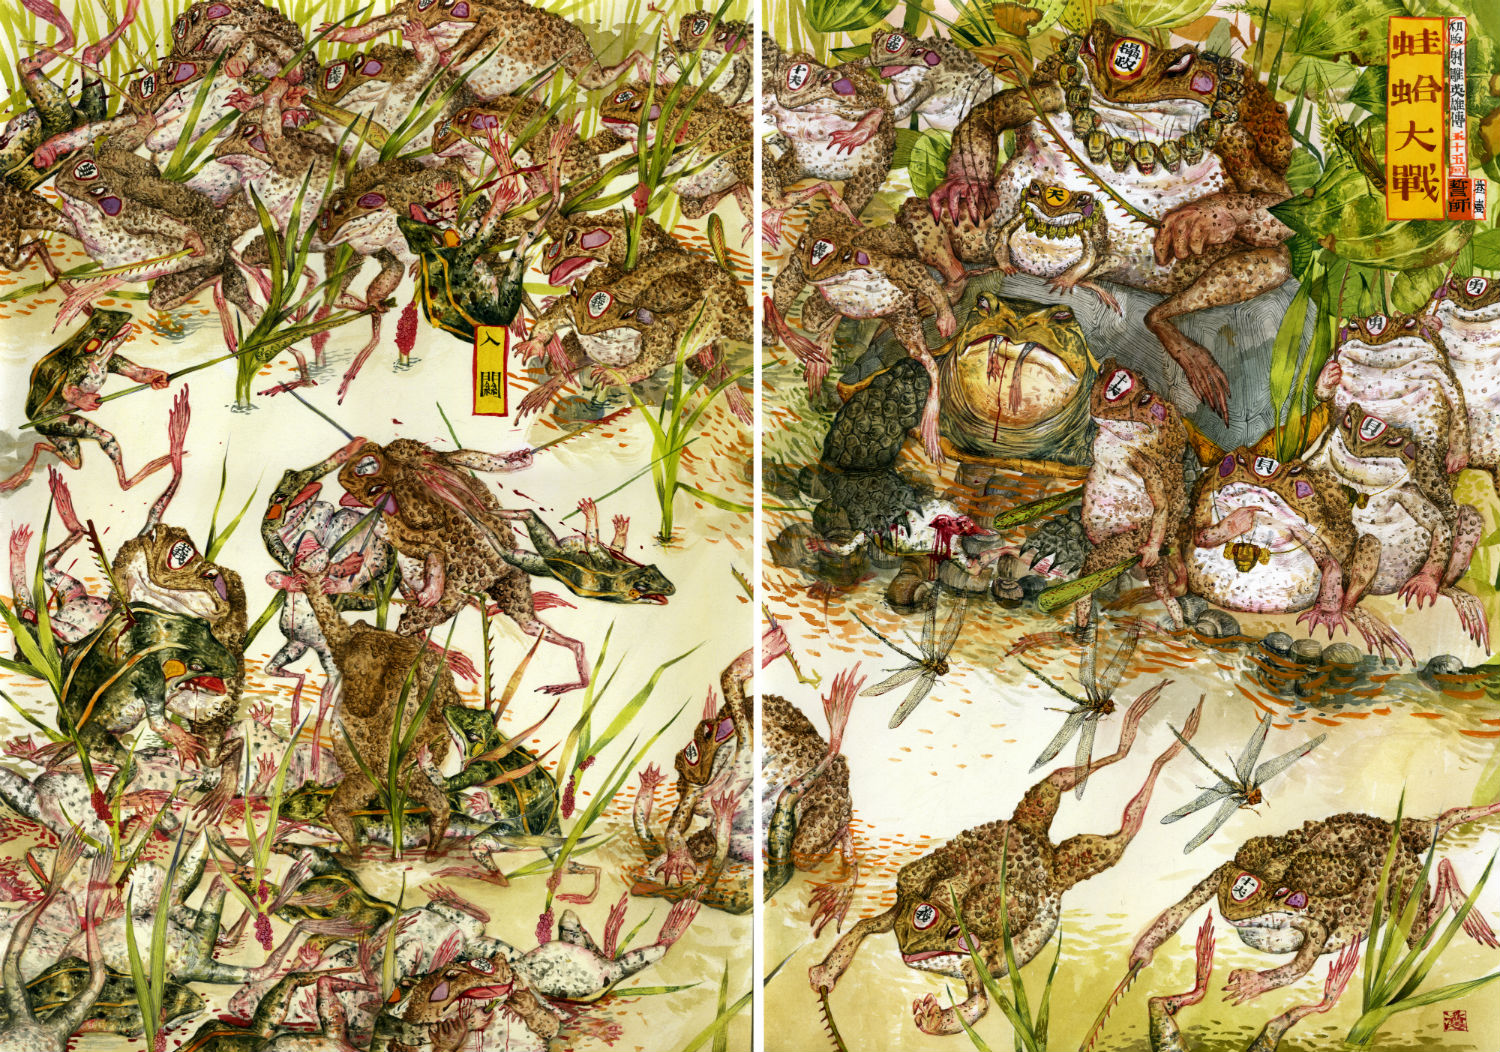 mu pan illustration colour detail animals fantasy